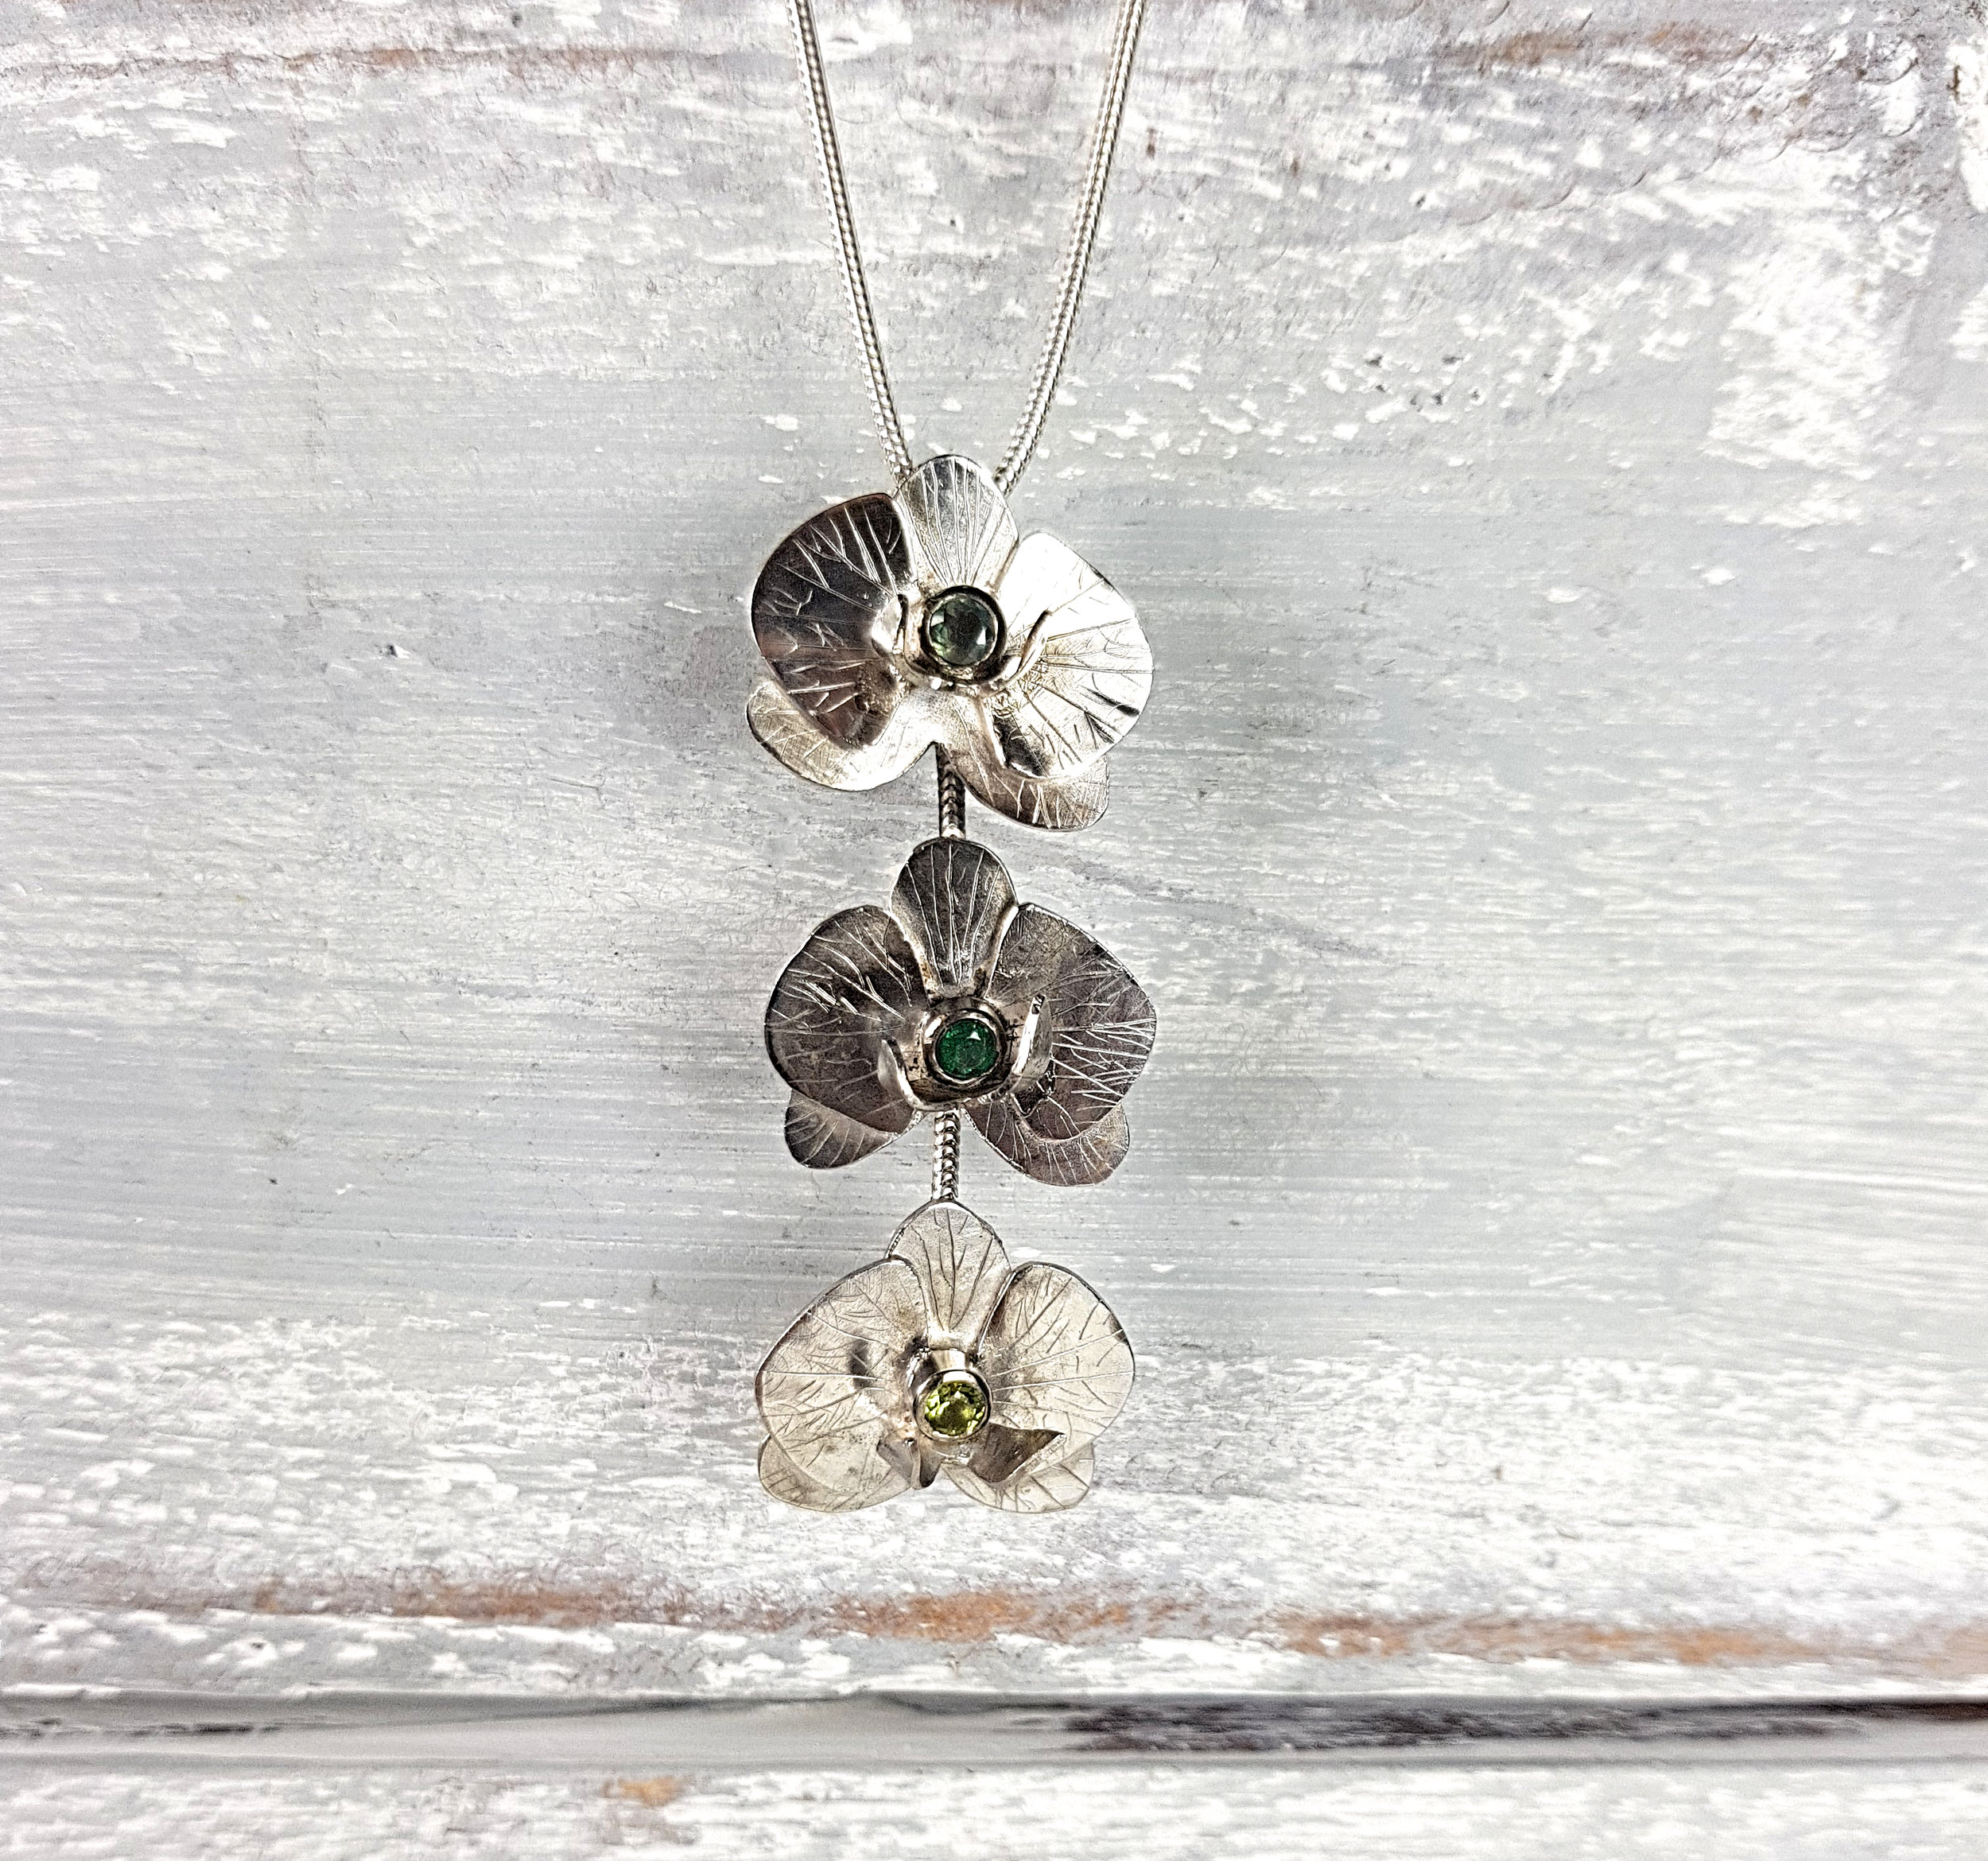 Jason commission a necklace for his sister. She loves orchid flowers so this was a little out of the norm for Shannon.  Set are the three birth stones of Jason's nieces. Alexandrite for June. Emerald for May. Peridot for August.